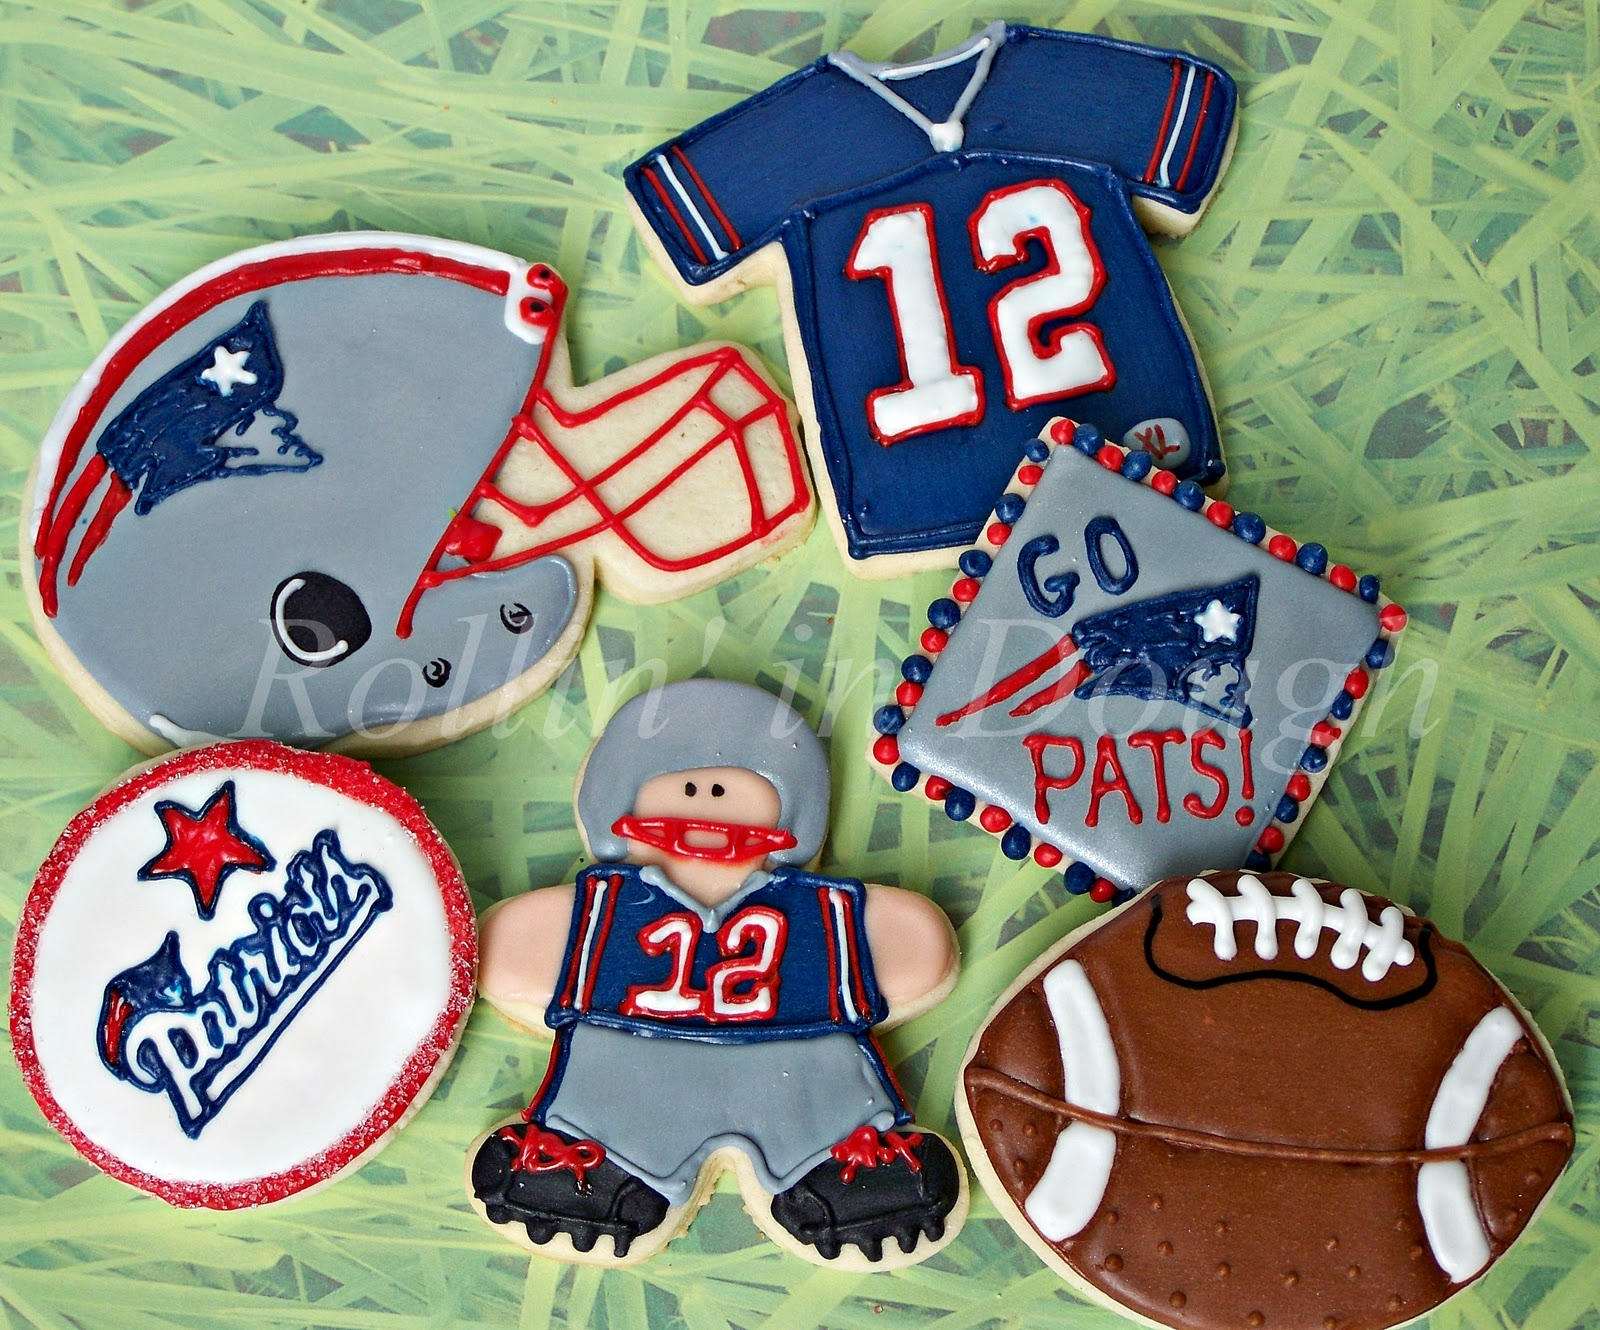 Rollin' in Dough: Patriots, Fleur de lis, and More Halloween